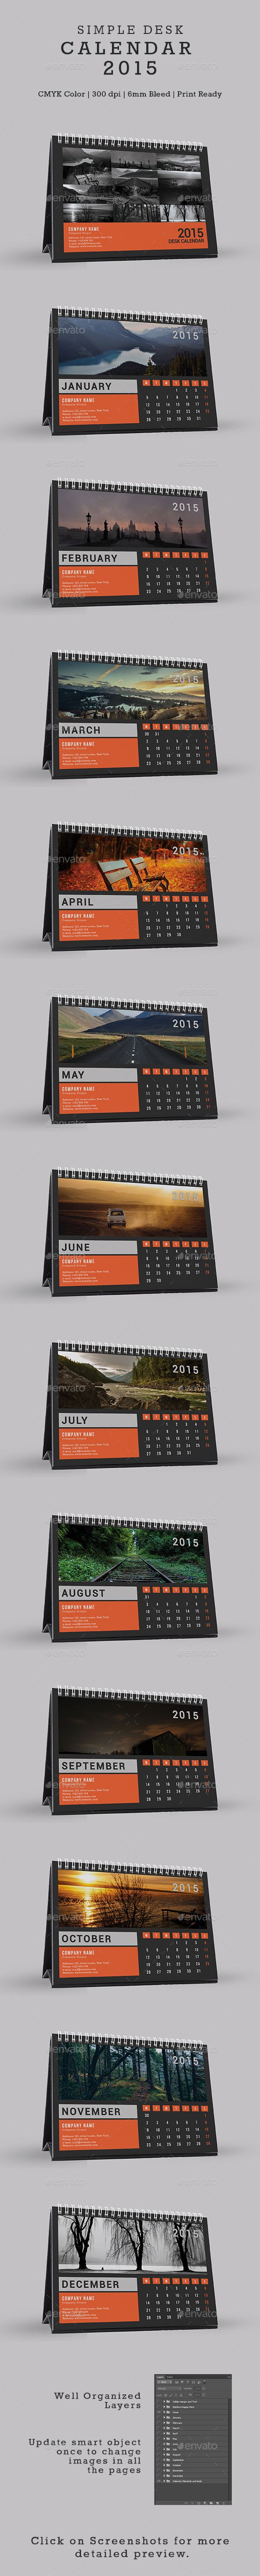 Simple Desk Calendar 2015 Template | Buy and Download: http://graphicriver.net/item/simple-desk-calendar-2015/9902552?ref=ksioks